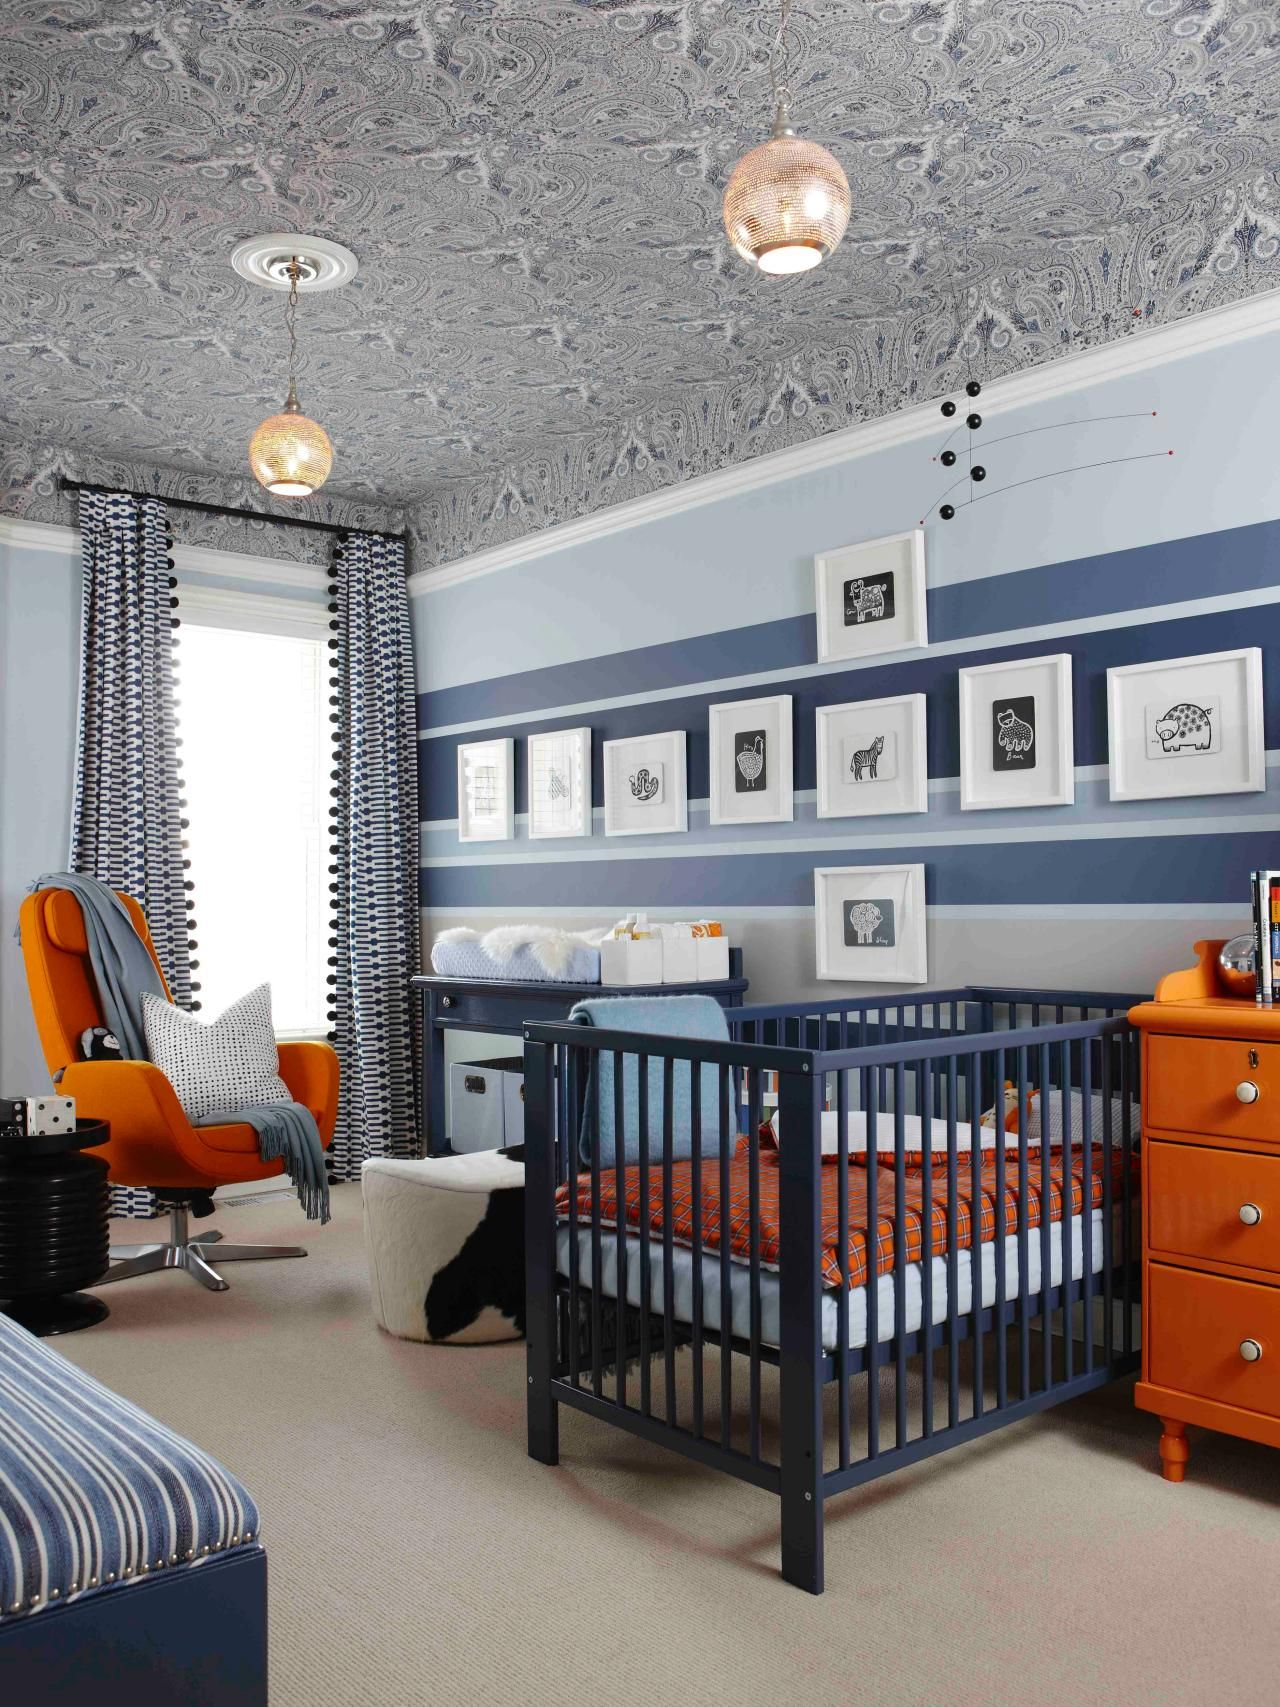 When designing a room, a jolting shade of tangerine and various shades of blue may not be the first color combination that comes to mind. However, the two pair very well together when used correctly (and won't make you feel like you're cheering for a sports team). In this room, think of the subdued and grayed shades of blue as neutrals. The tangerine chair, crib mattress and changing table are now beautiful, vibrant accents among soft blue surroundings.